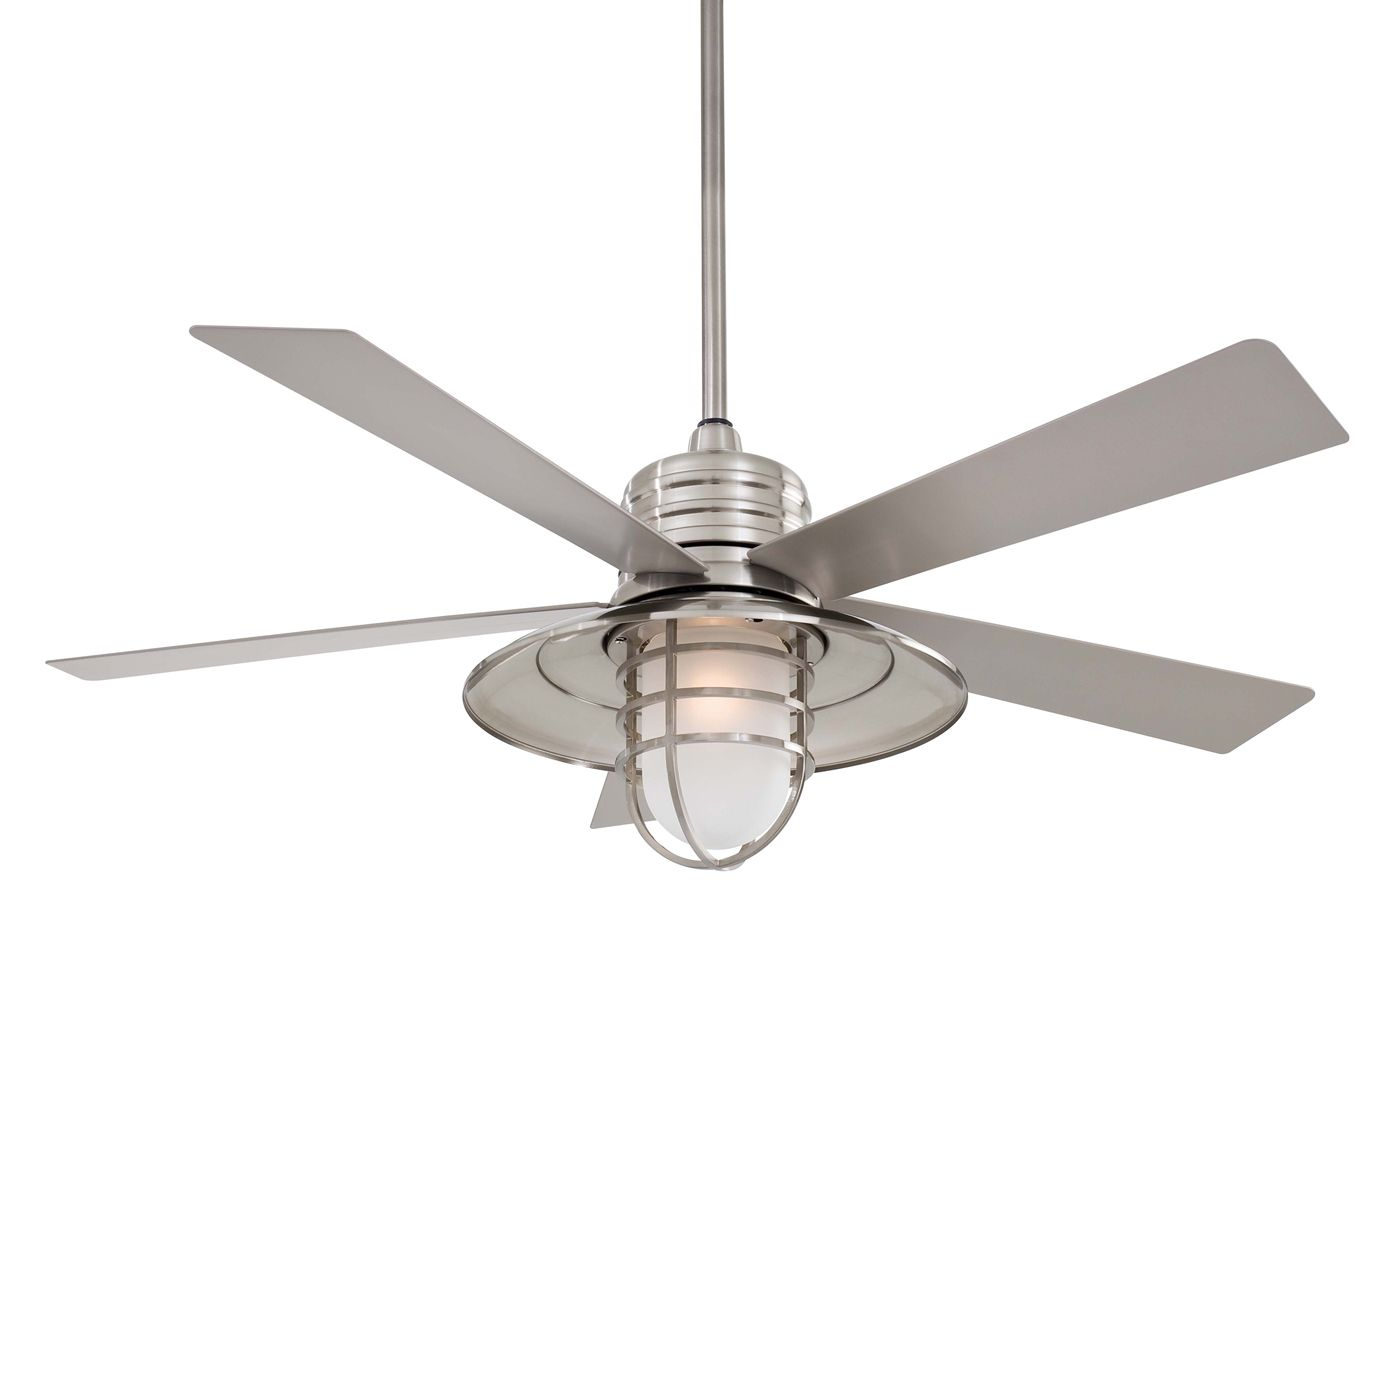 ceilings stylish ideas lights fabulous near the cool best collection fans me for designer zephyr ceiling inspirations fan bedrooms including pictures bedroom menards enchanting eco with henley